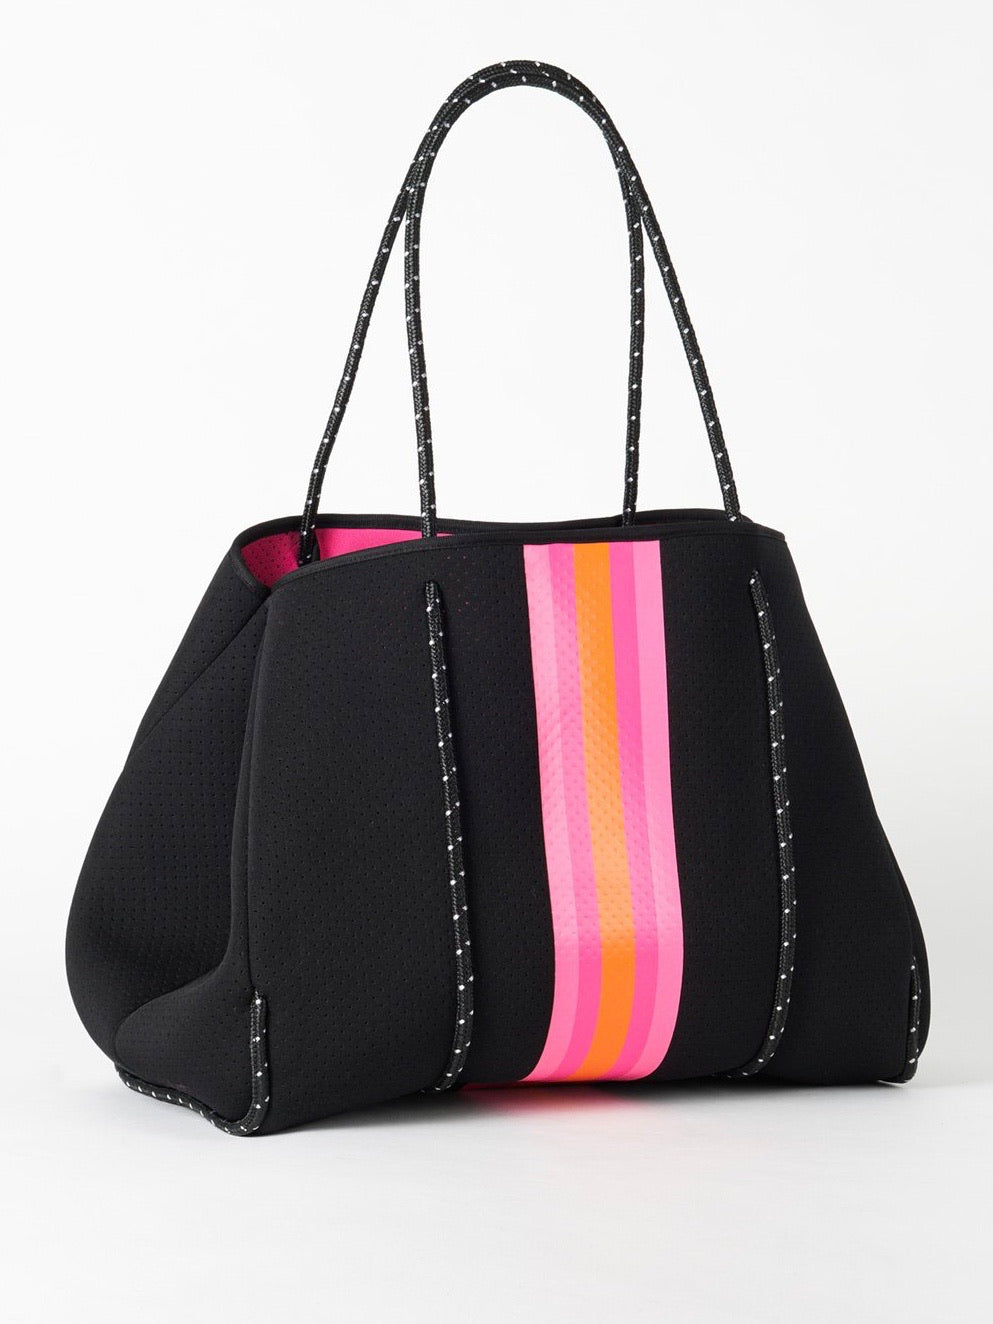 Rave Greyson Tote